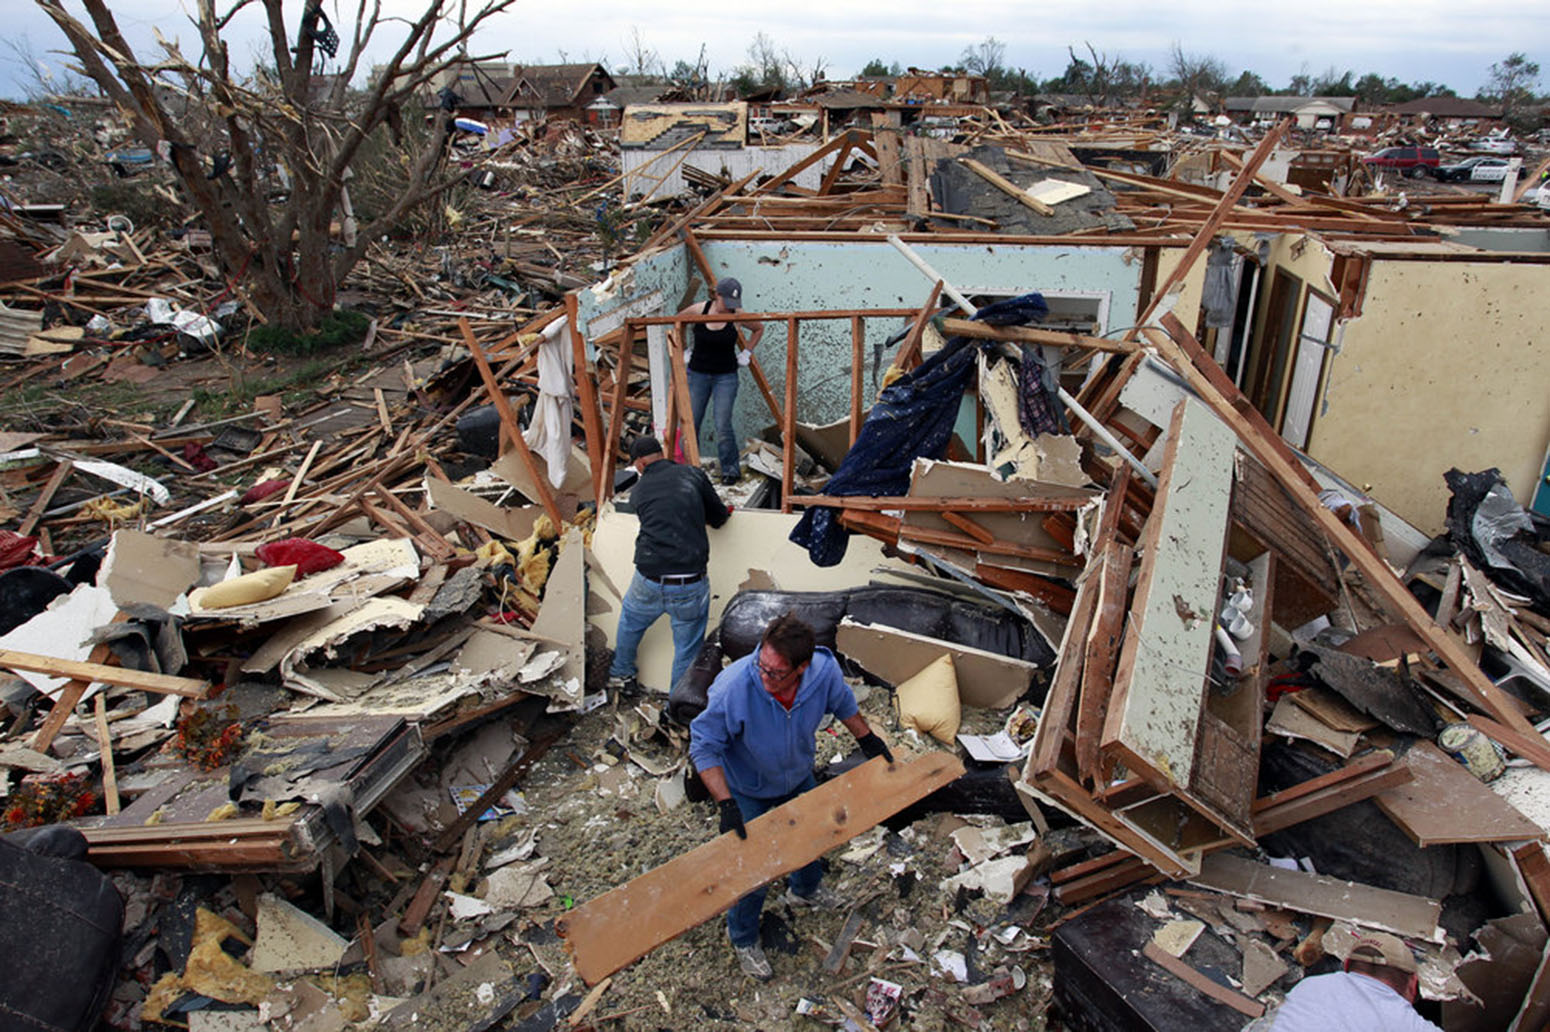 The aftermath of a tornado in Moore, Okla.